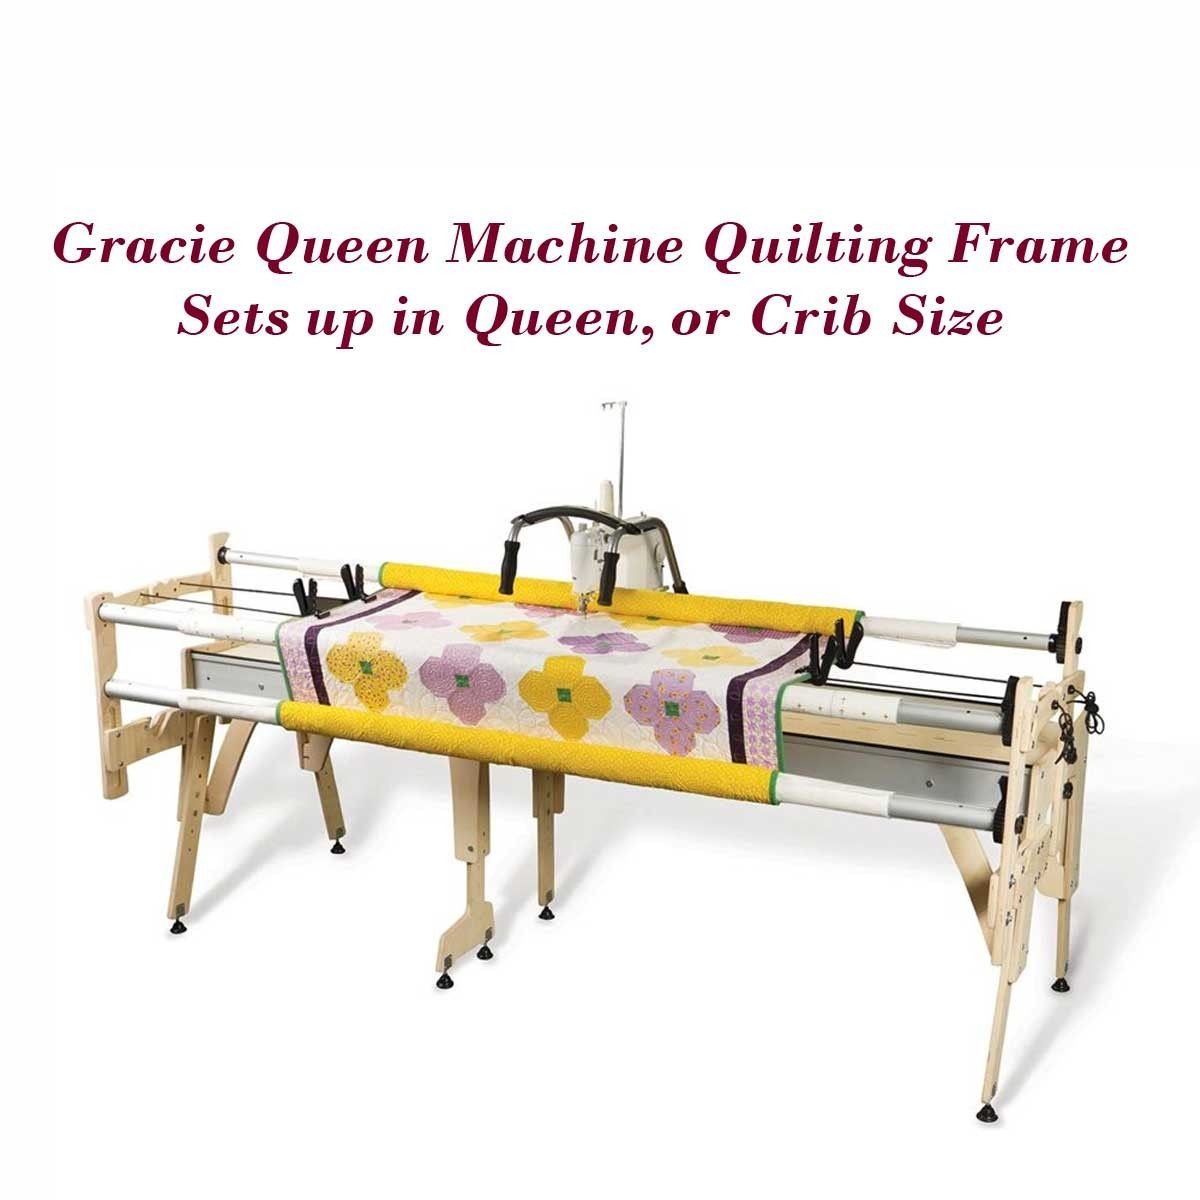 grace gracie queen machine quilting frame